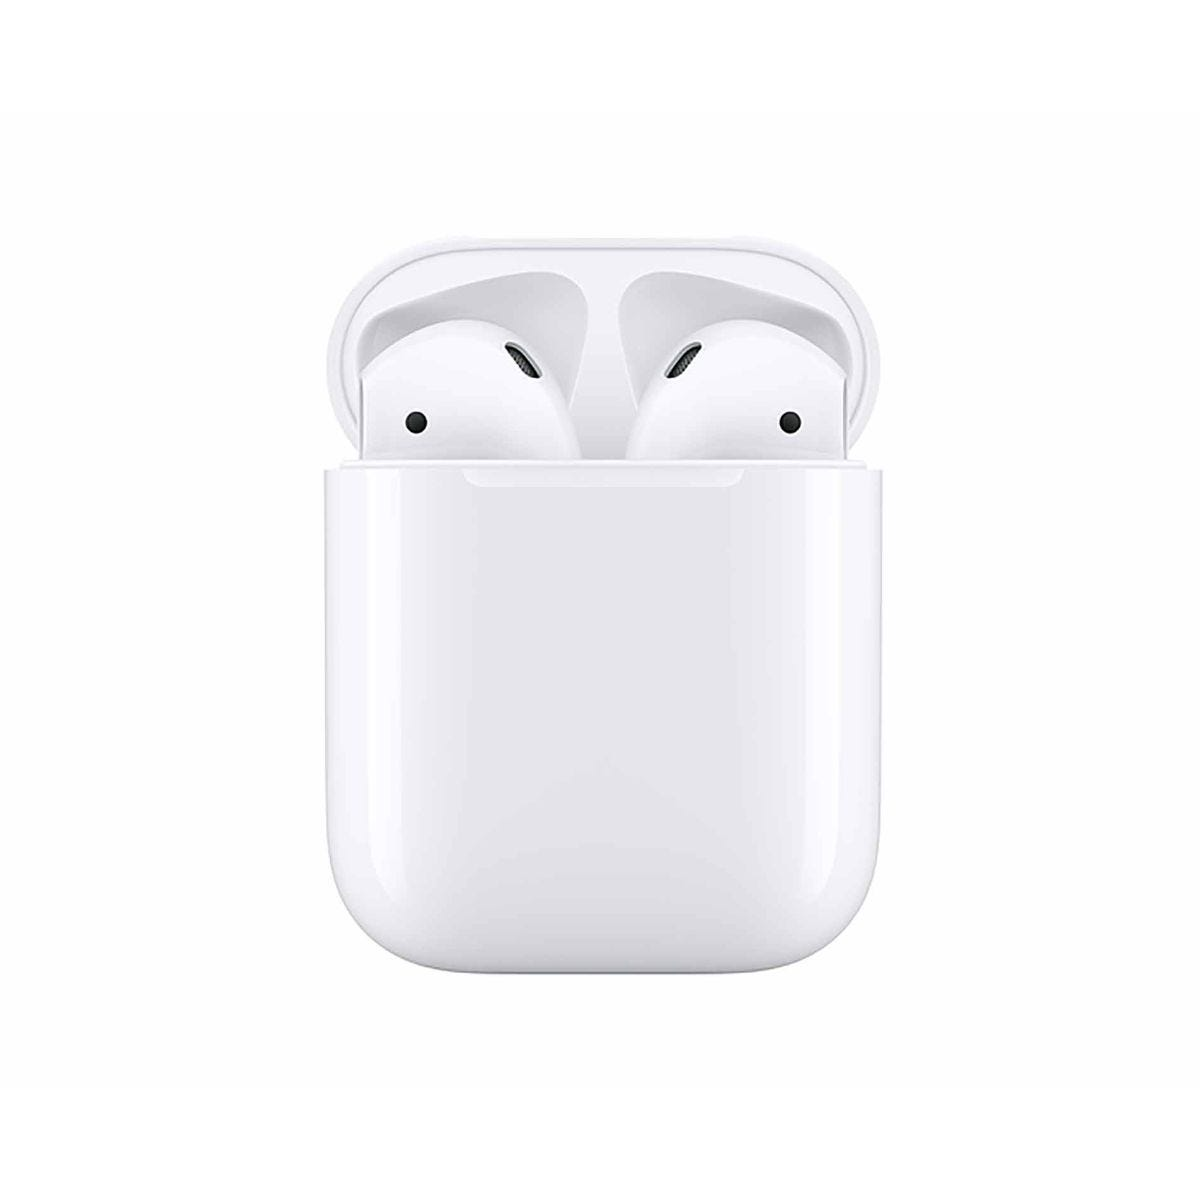 Image of Apple AirPods with Charging Case Gen 2